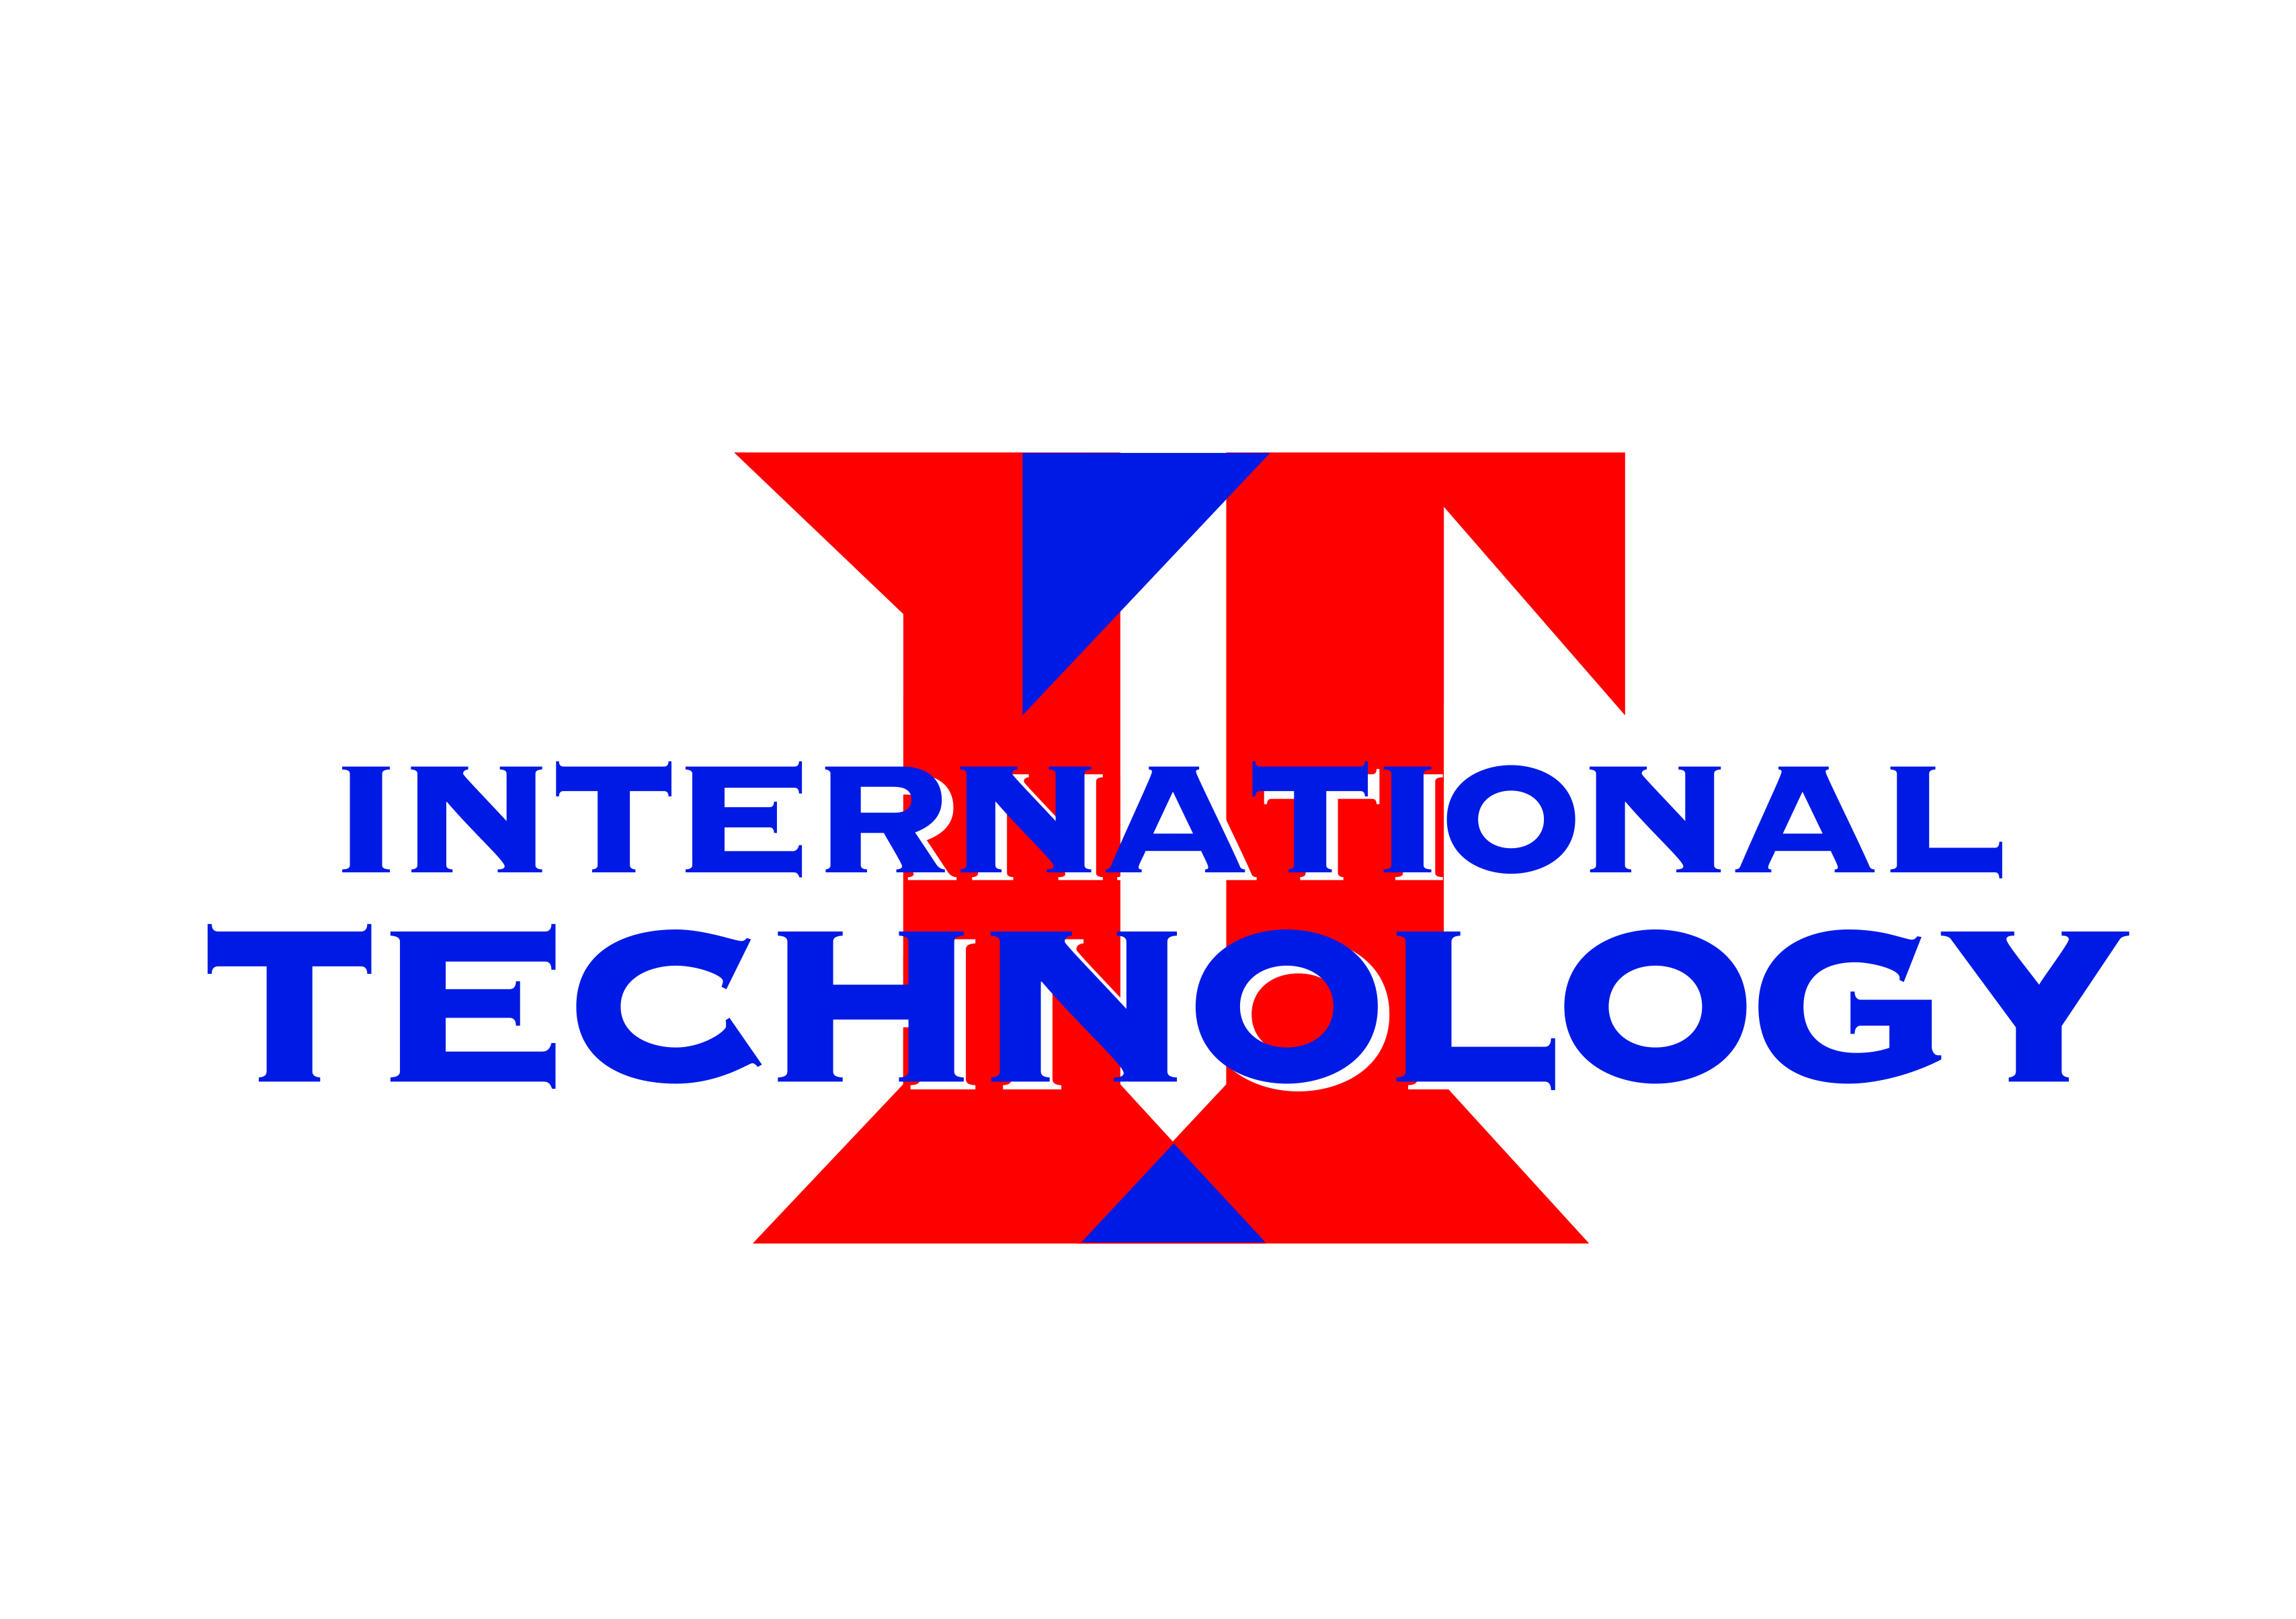 International Technology Logo